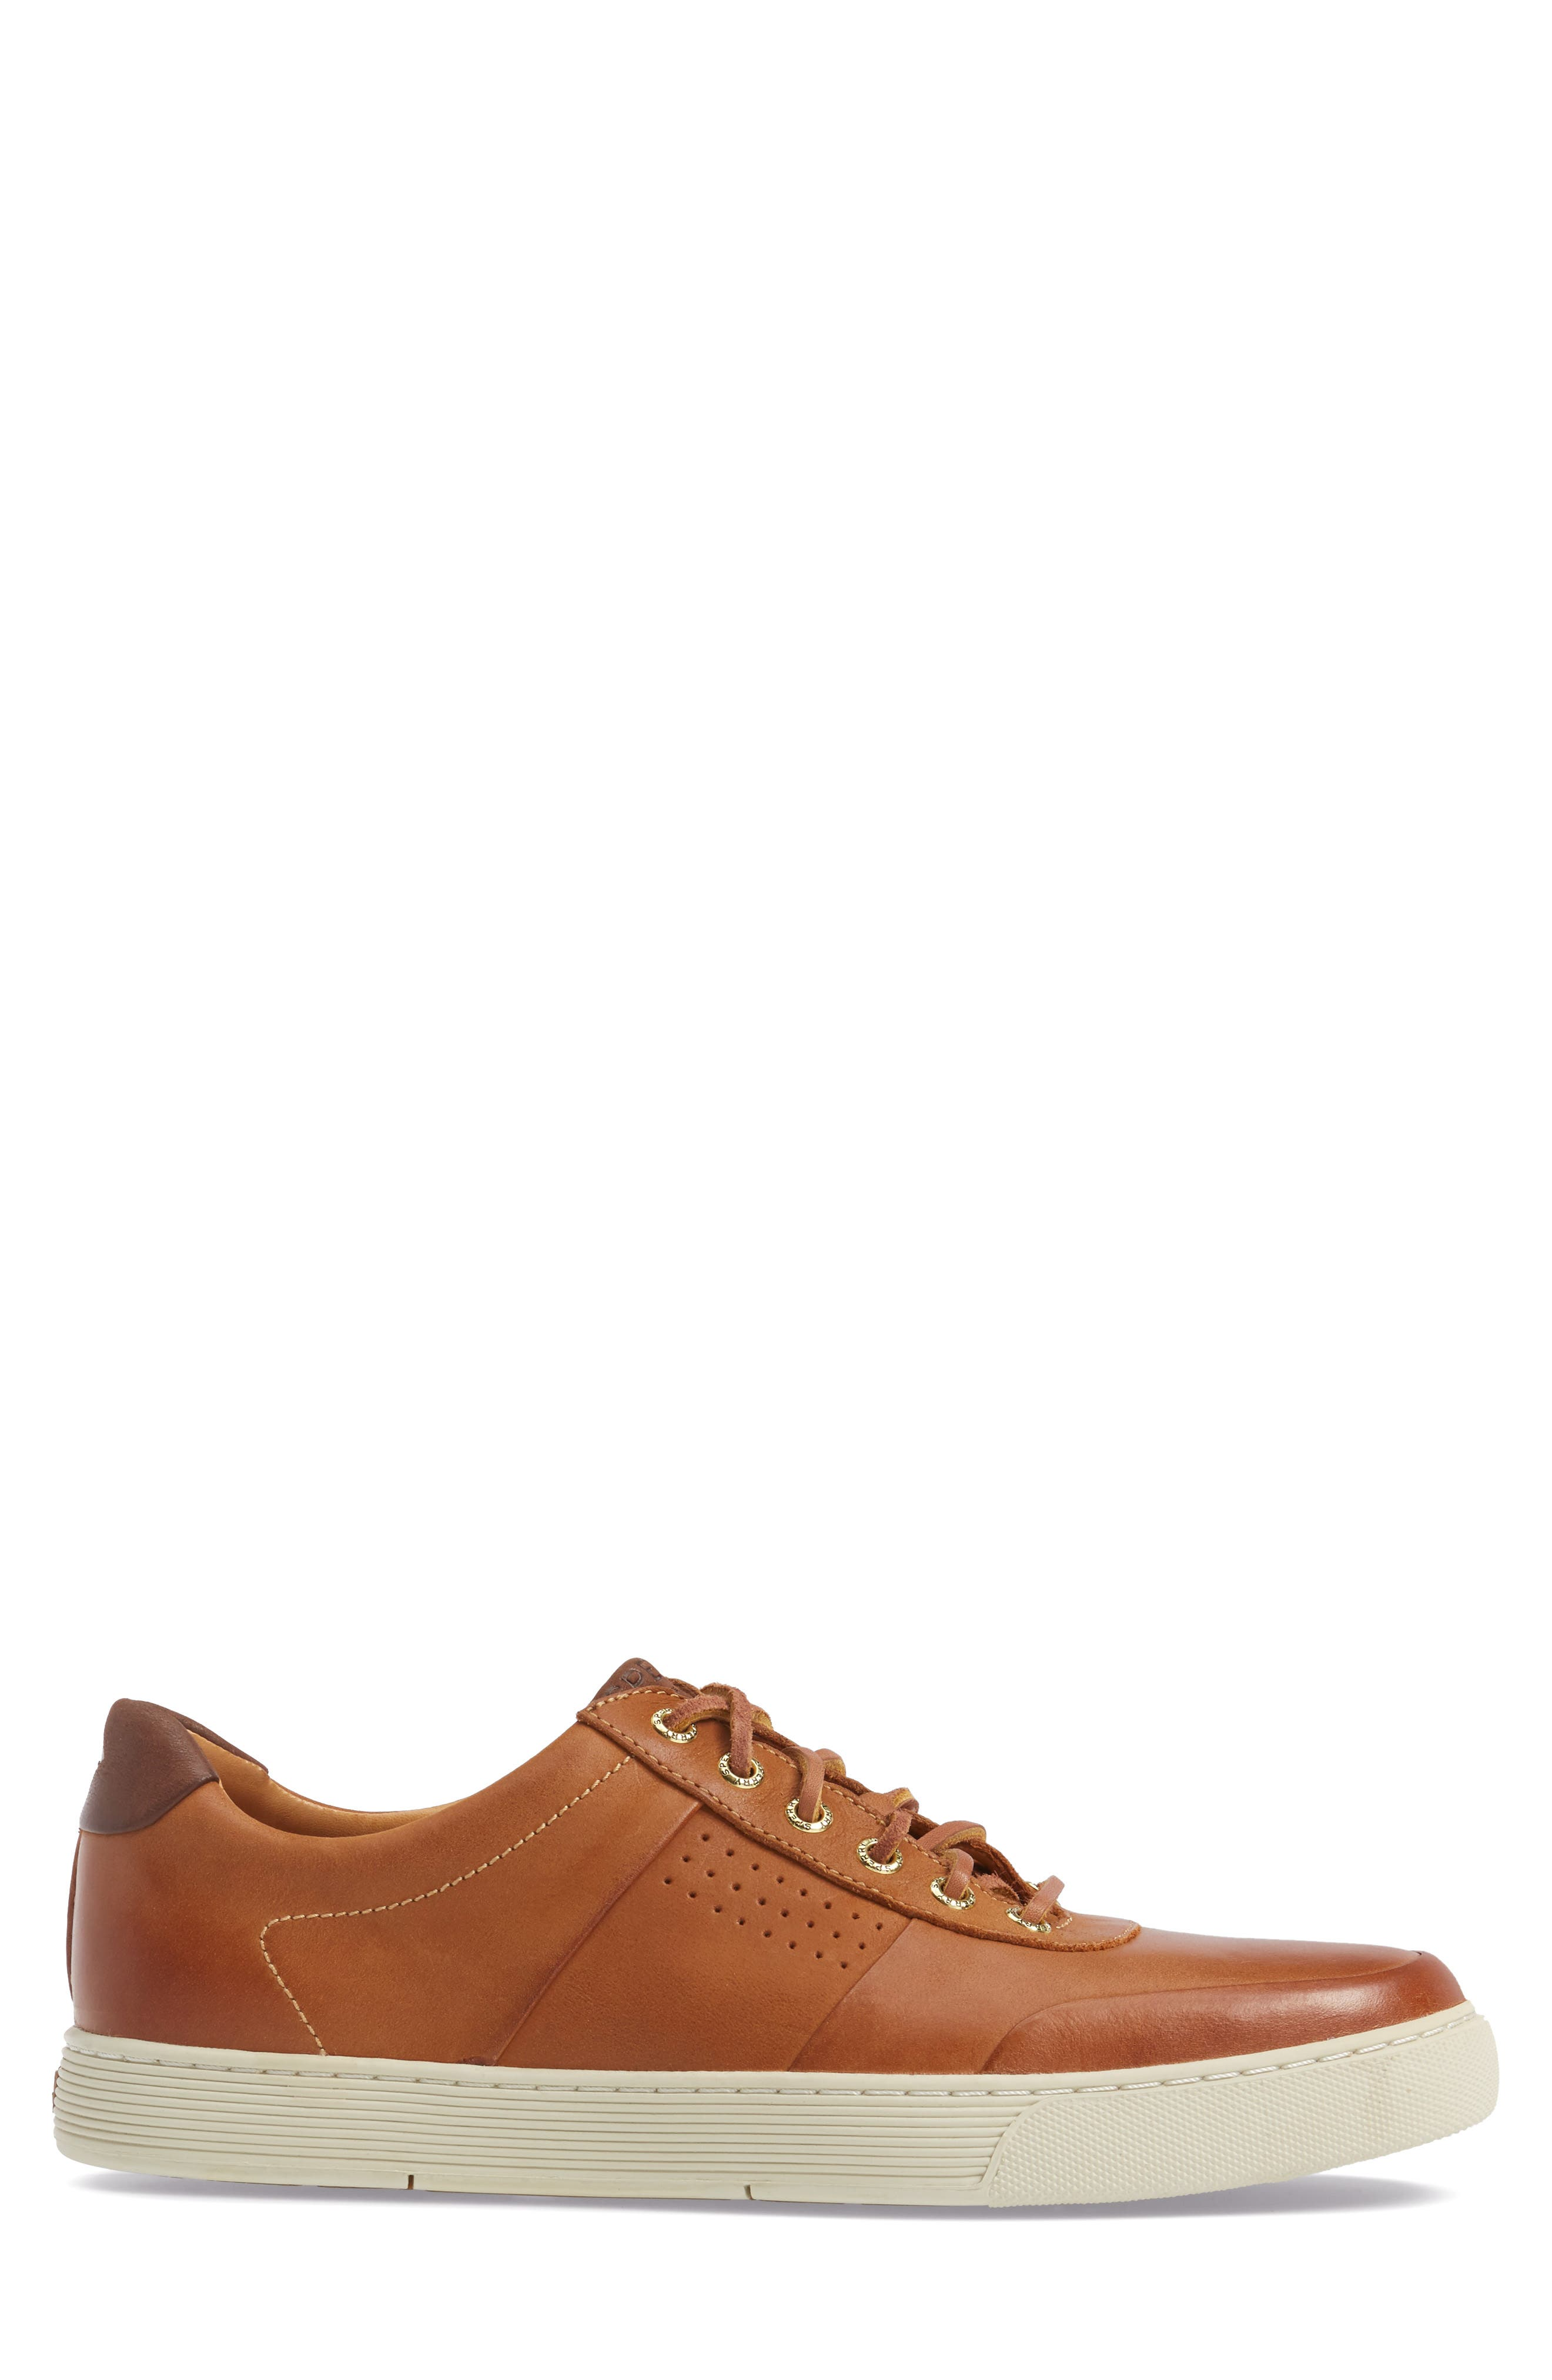 Gold Cup Sport Sneaker,                             Alternate thumbnail 6, color,